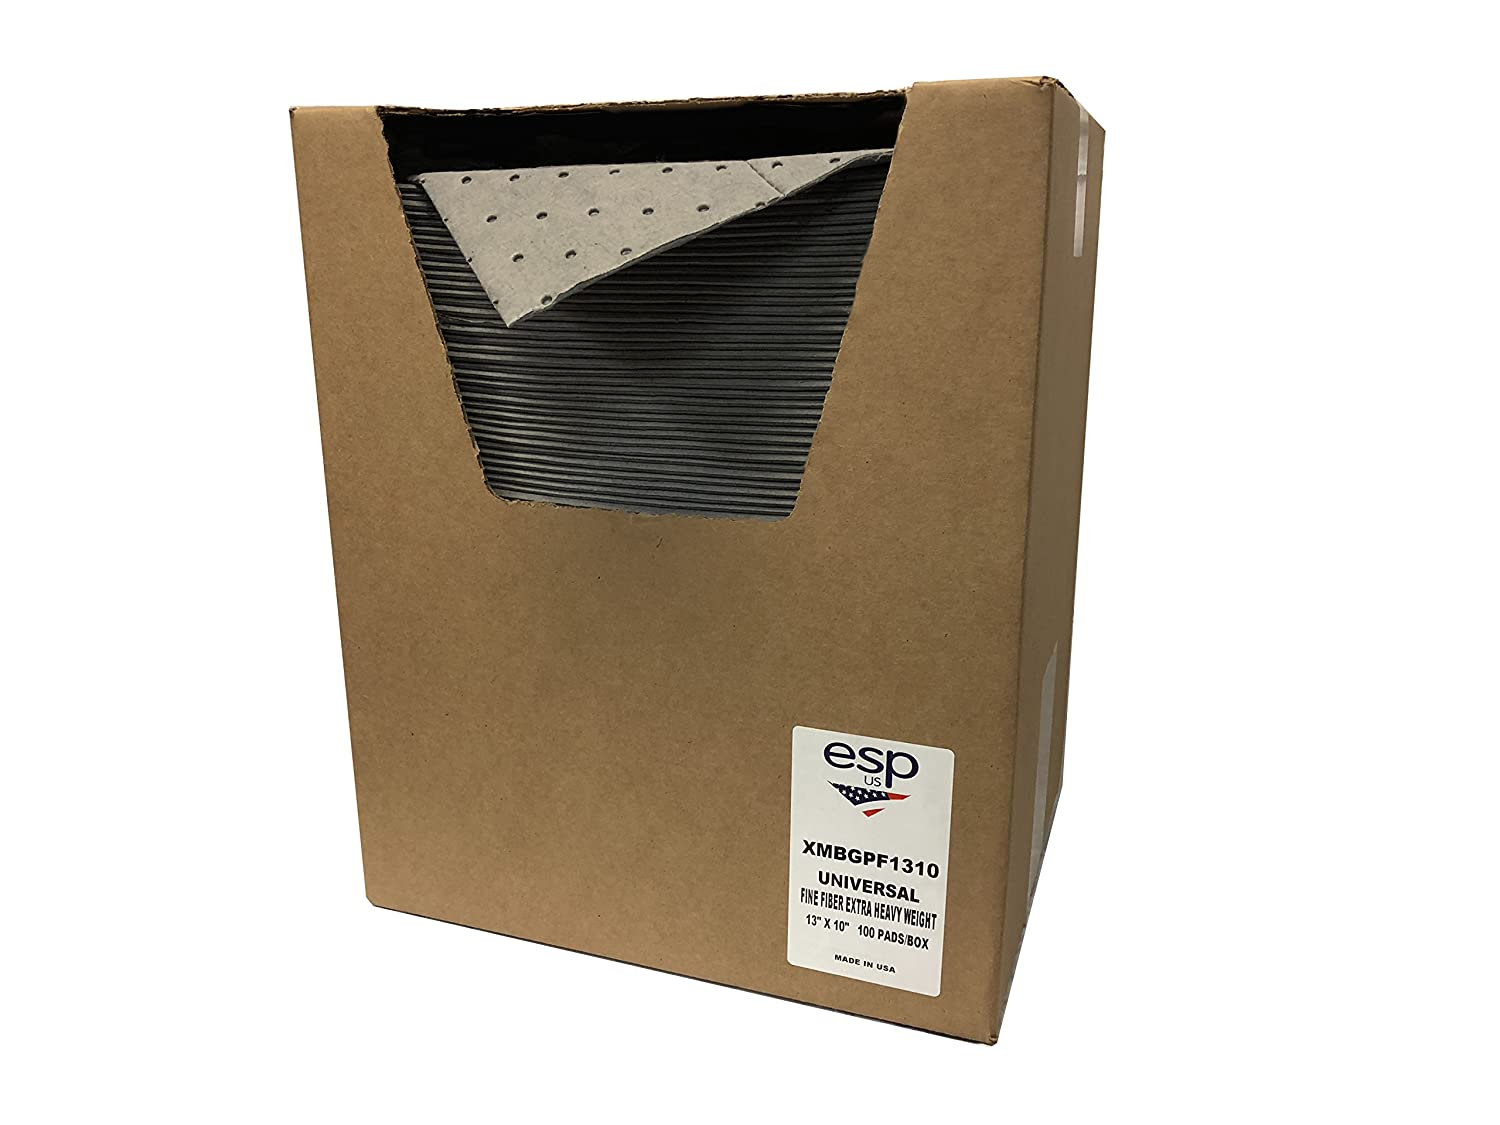 """NPS Spill Control XMBGPF1310 Extra Heavy Absorbent, 12 Gal Capacity, Polypropylene, Gray Pad (13"""" x 10"""") 100/Box: Industrial & Scientific"""